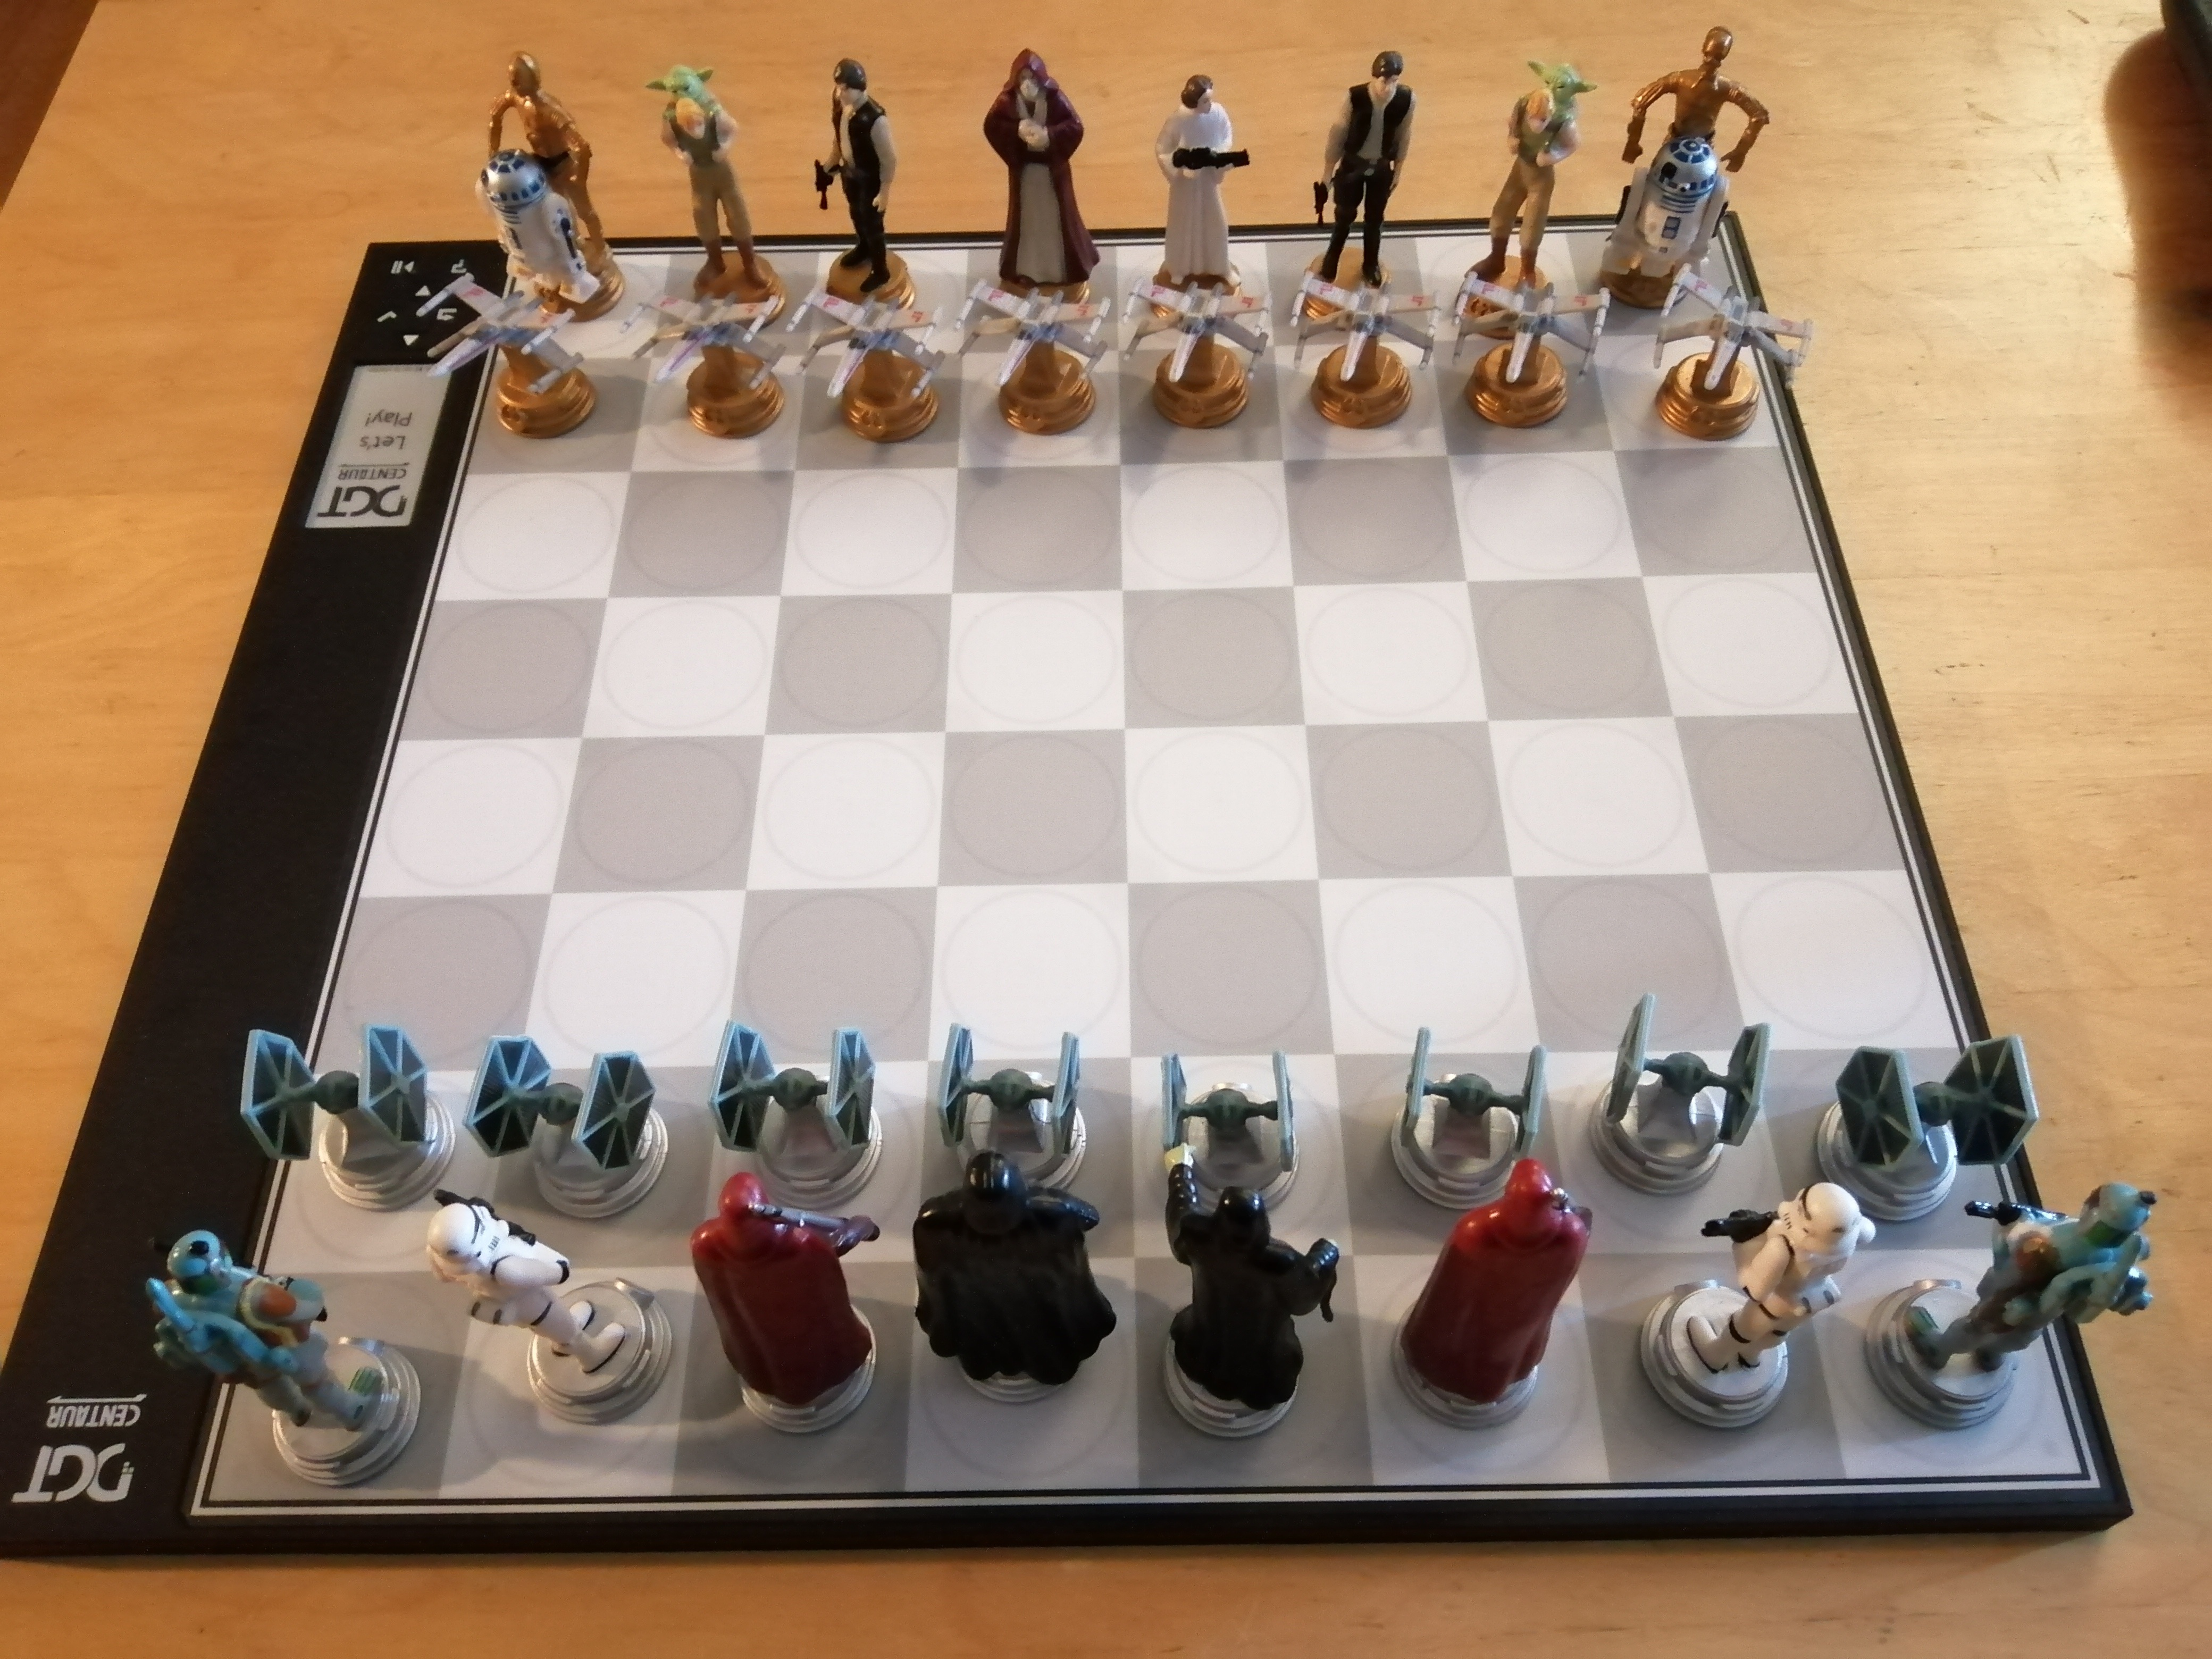 HIARCS Chess Forums :: View topic - DGT Centaur first impressions